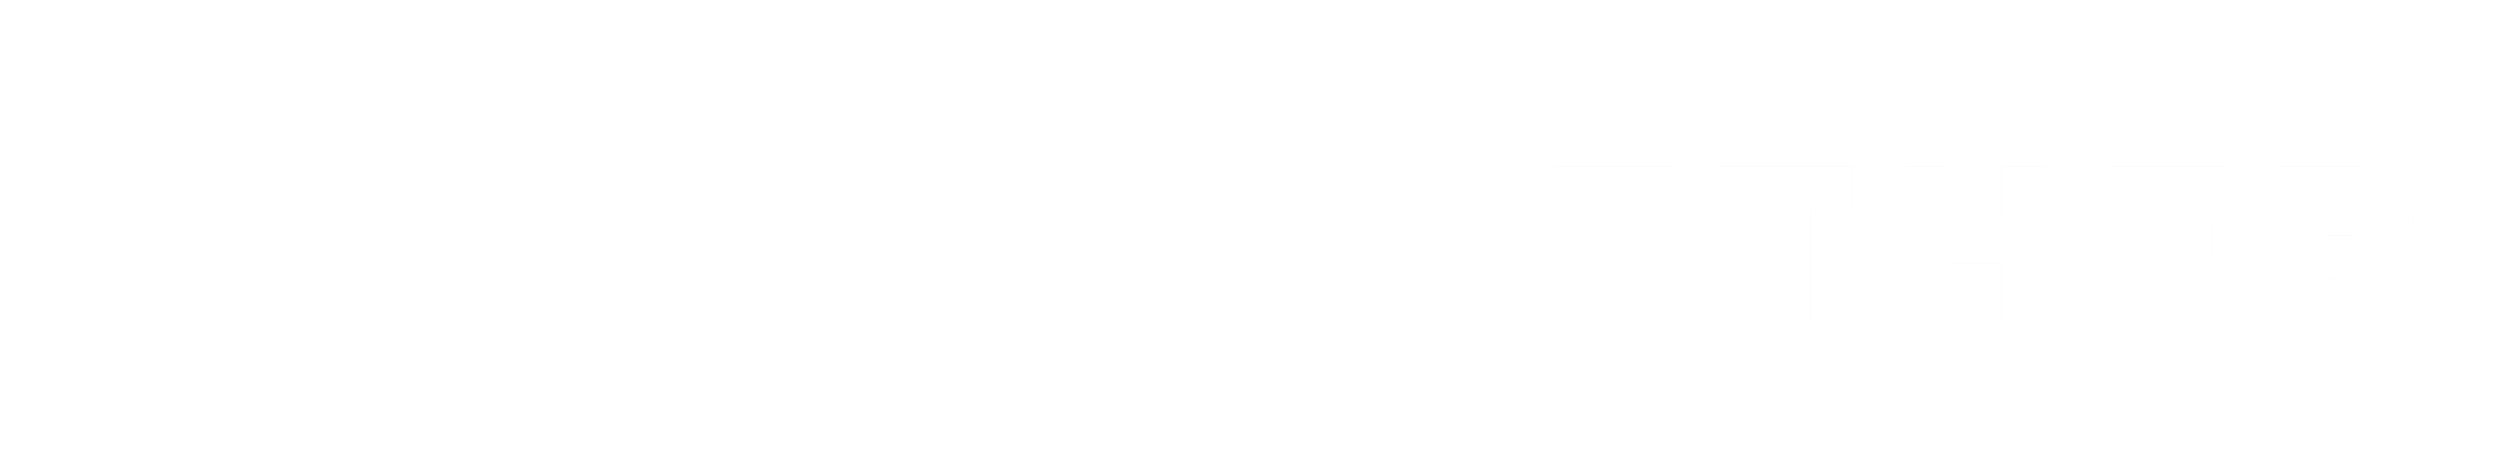 Bellwether Logo White PNG.png